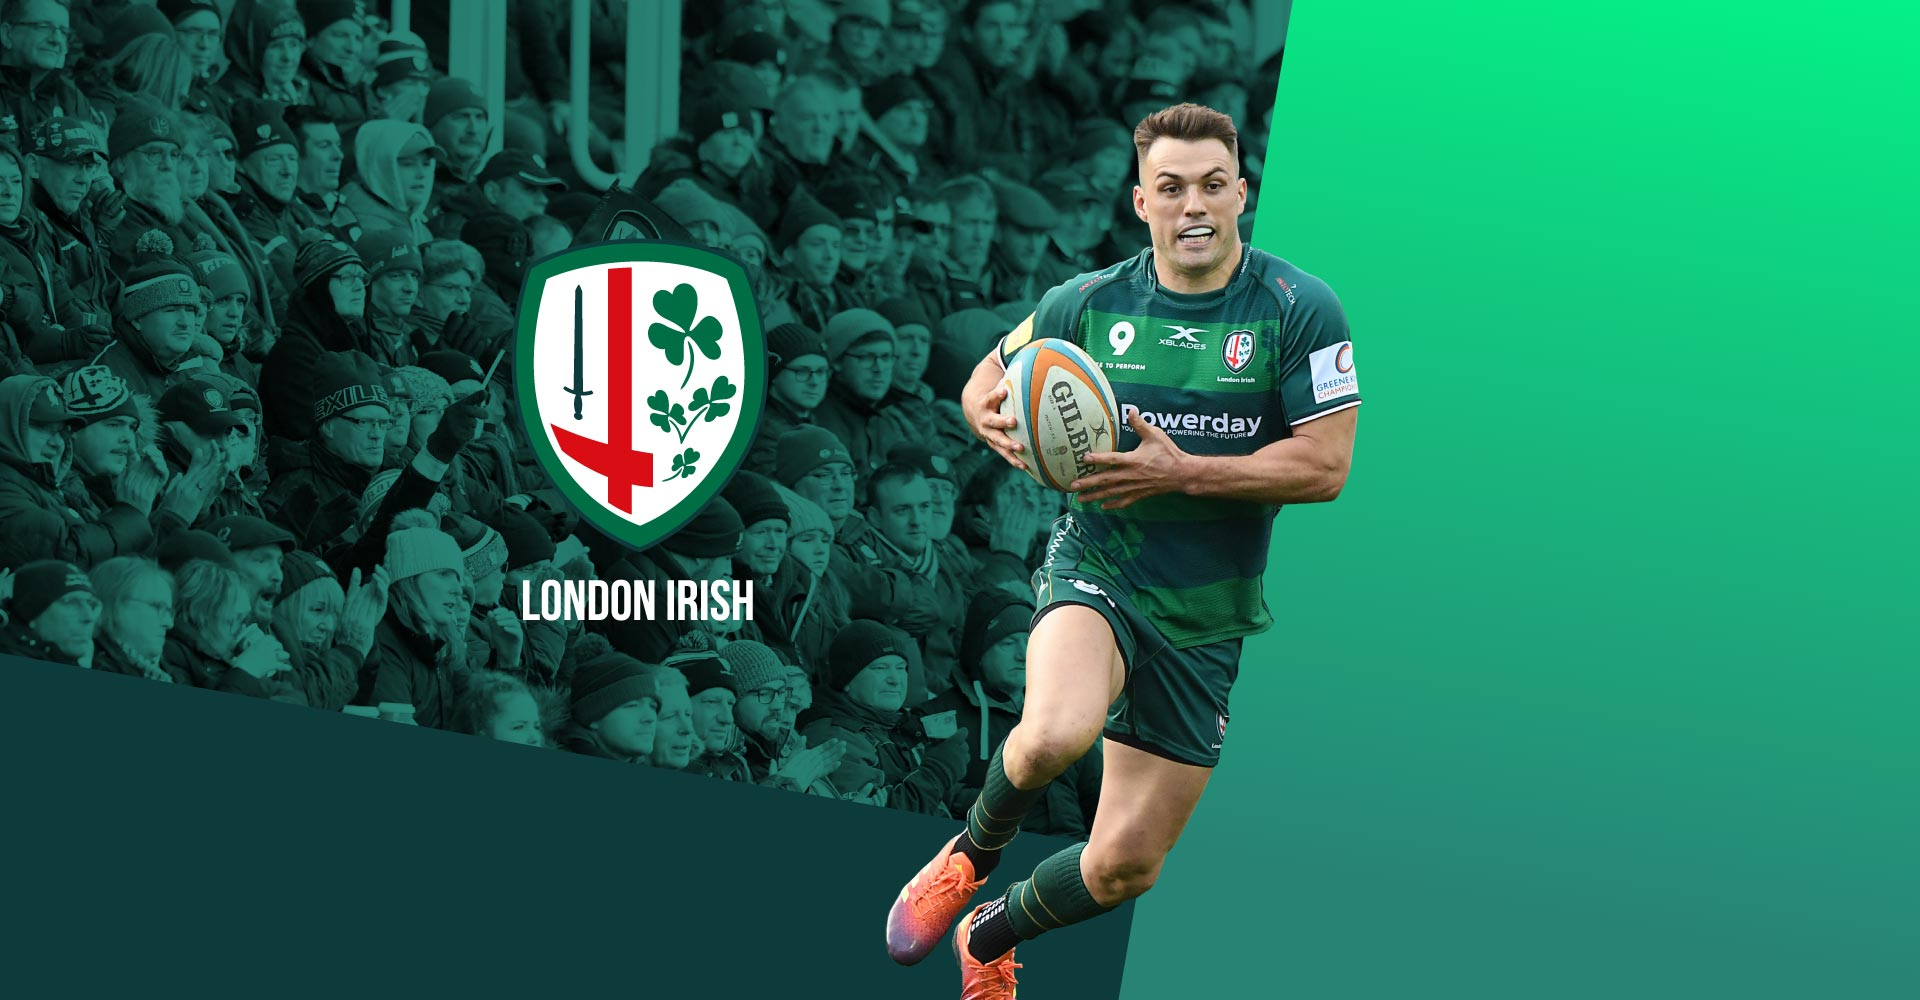 London Irish Work by Image Creative Design